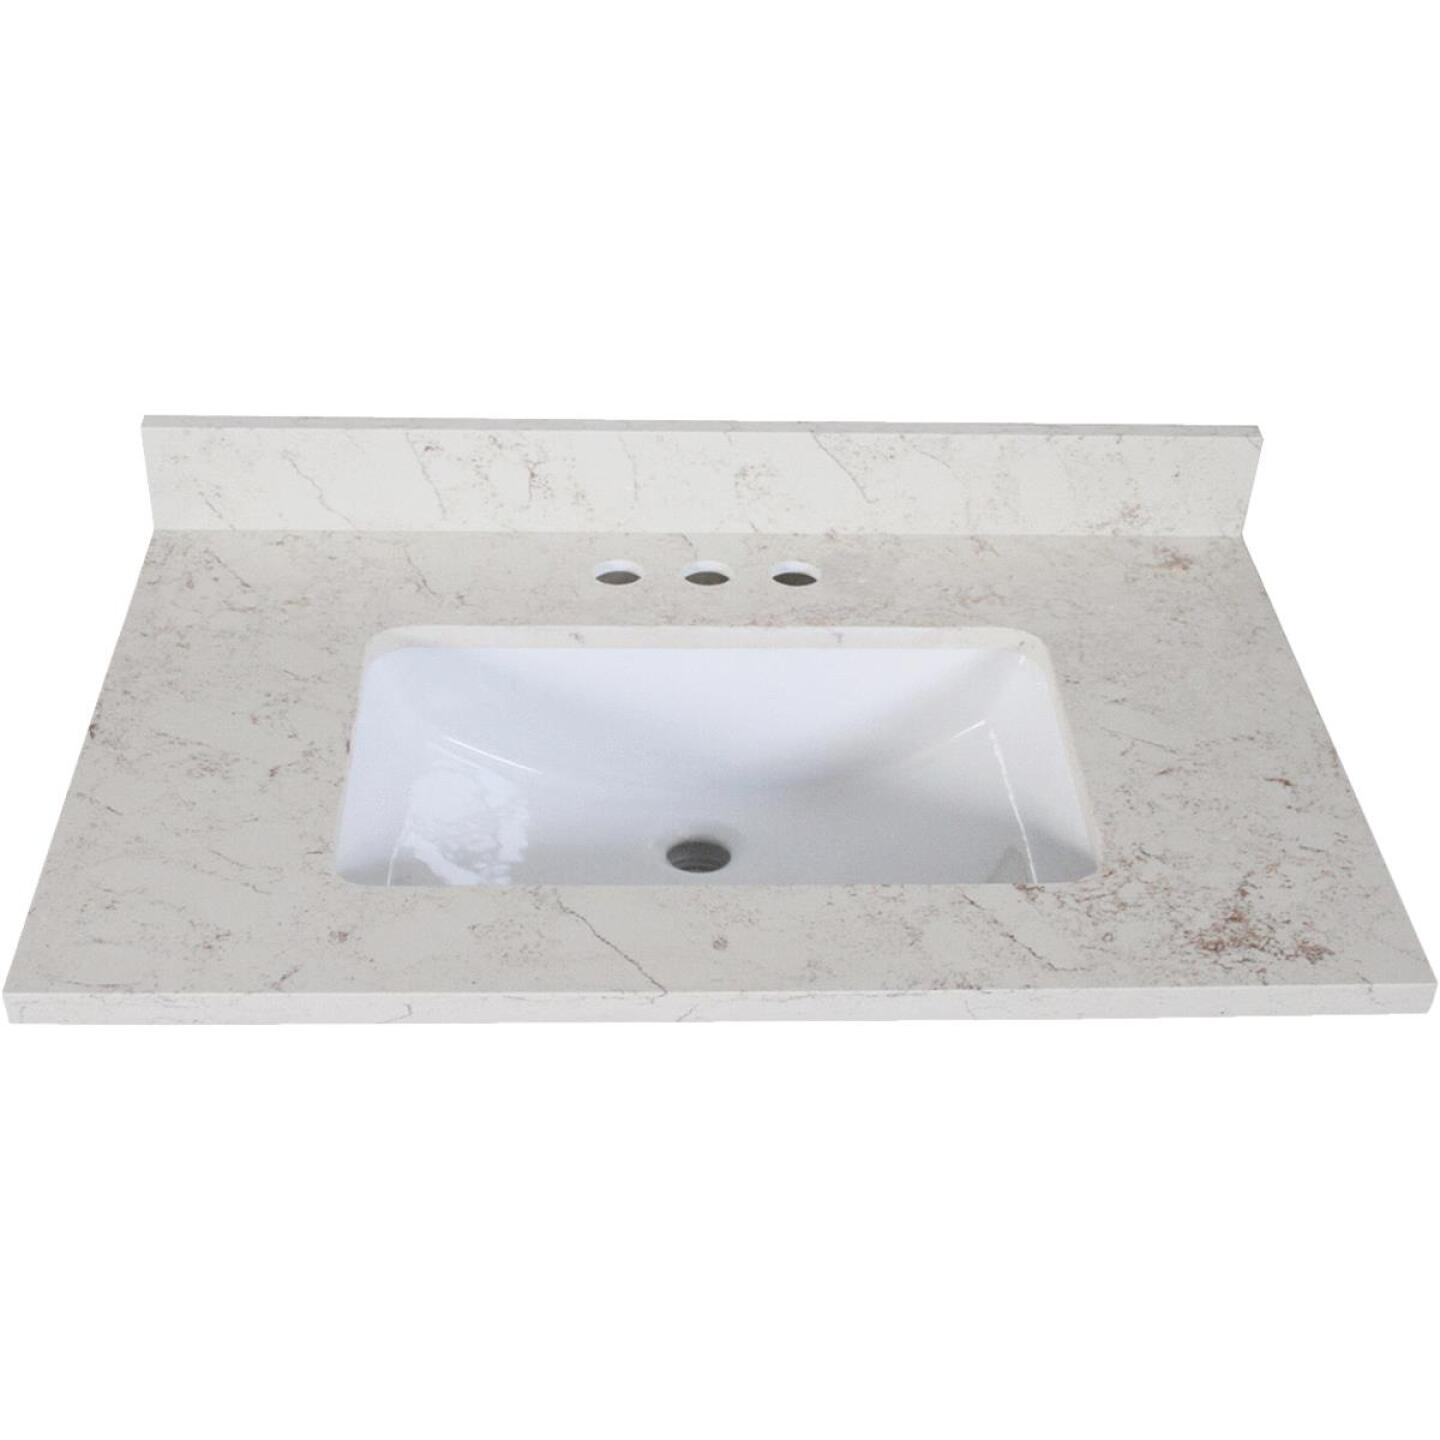 Design House 25 In. W x 22 In. D Giallo Quartz Vanity Top with Wave Bowl Image 1